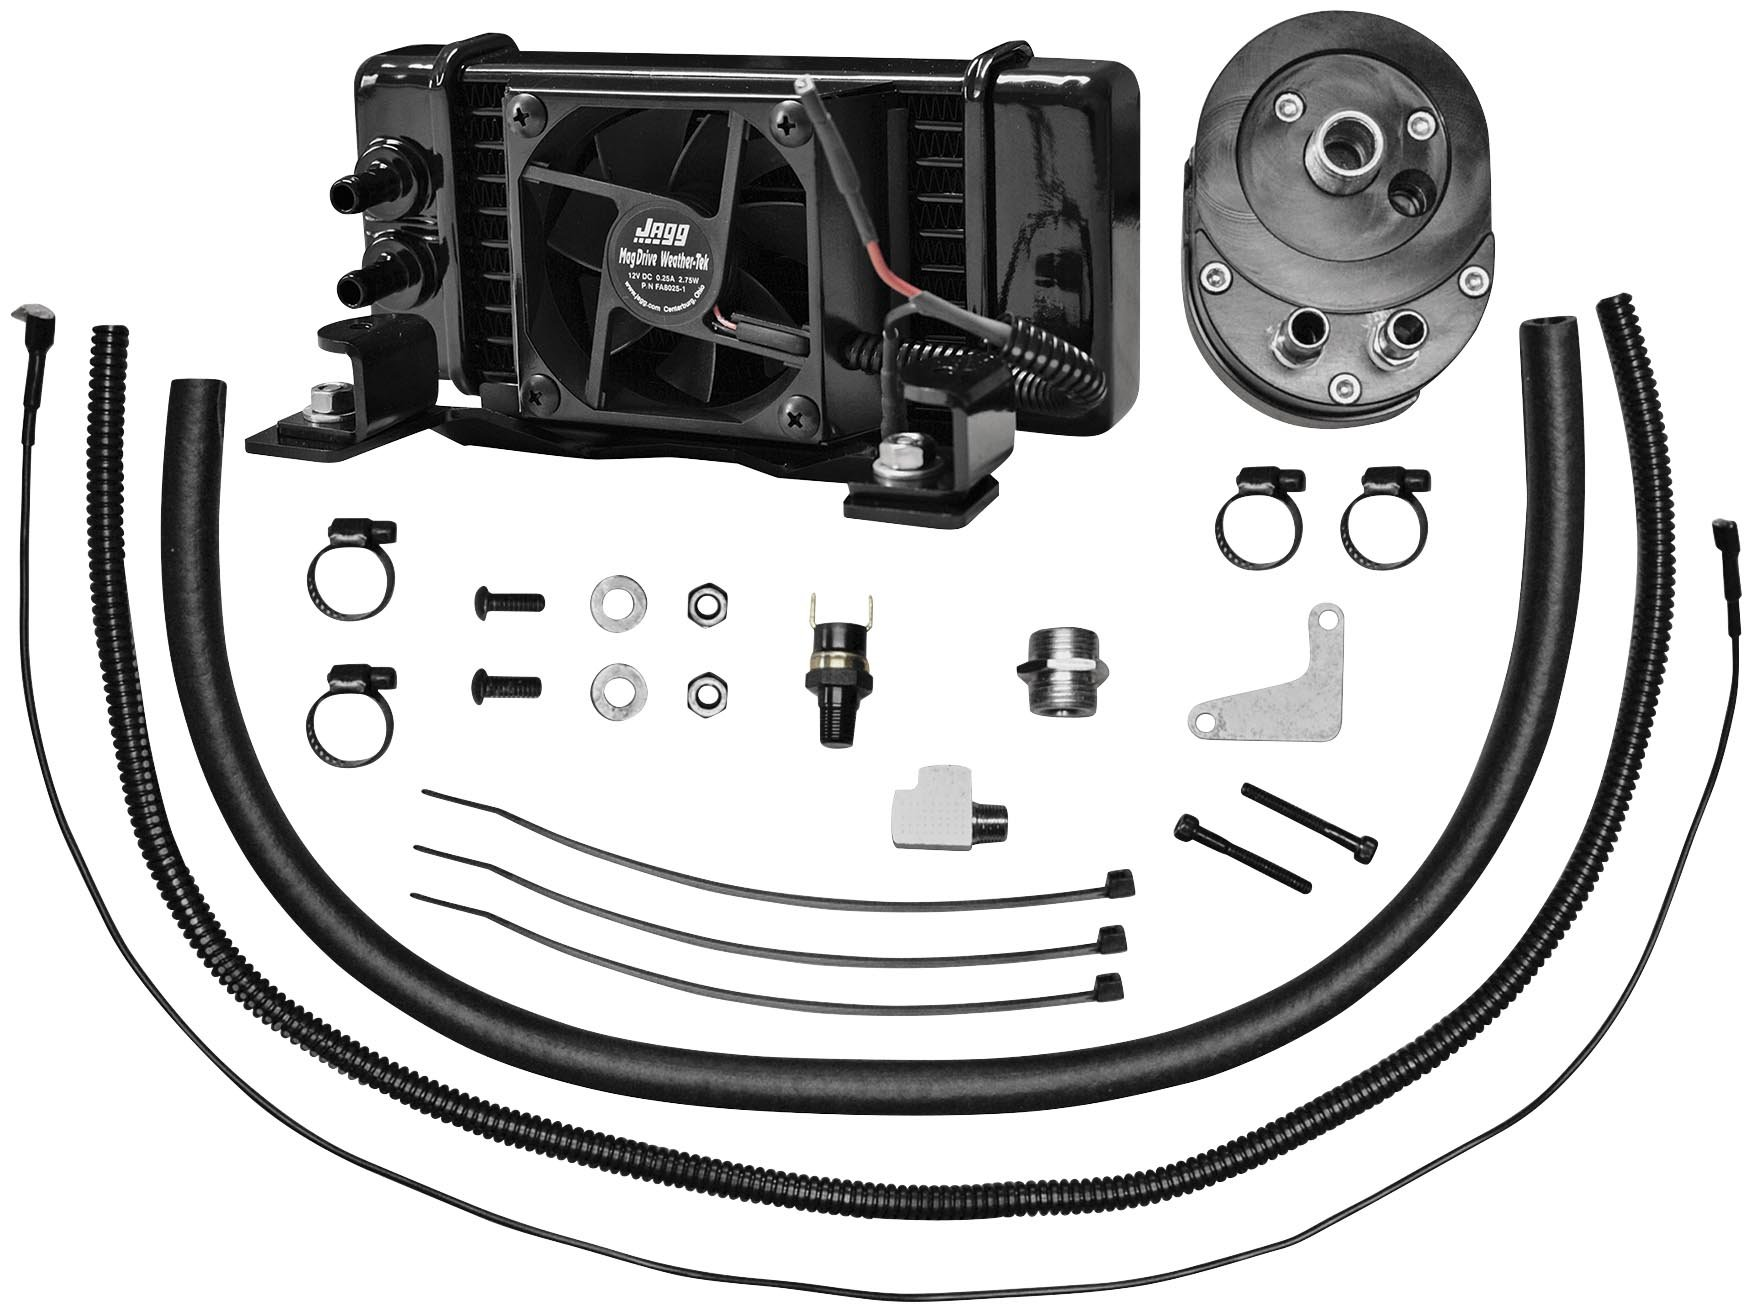 Jagg Oil Coolers Horizontal Low-Mount 10 Row Fan-Assisted Oil Cooler Kit - Black 751-FP2400 by Jagg